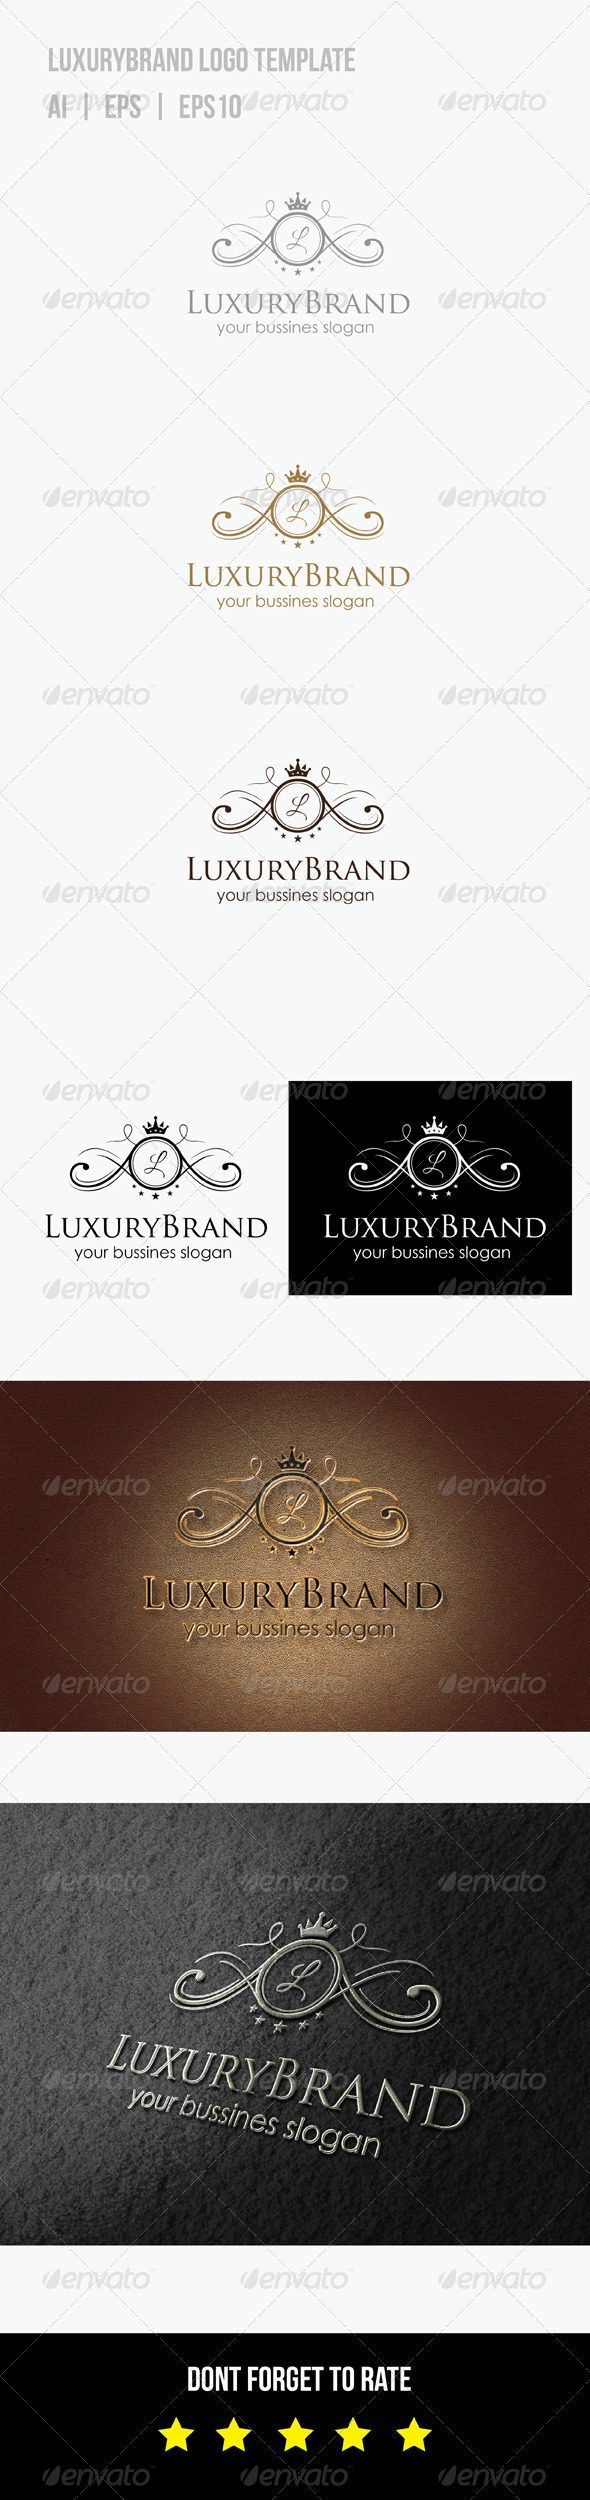 GraphicRiver Luxury Brand Logo 8760215